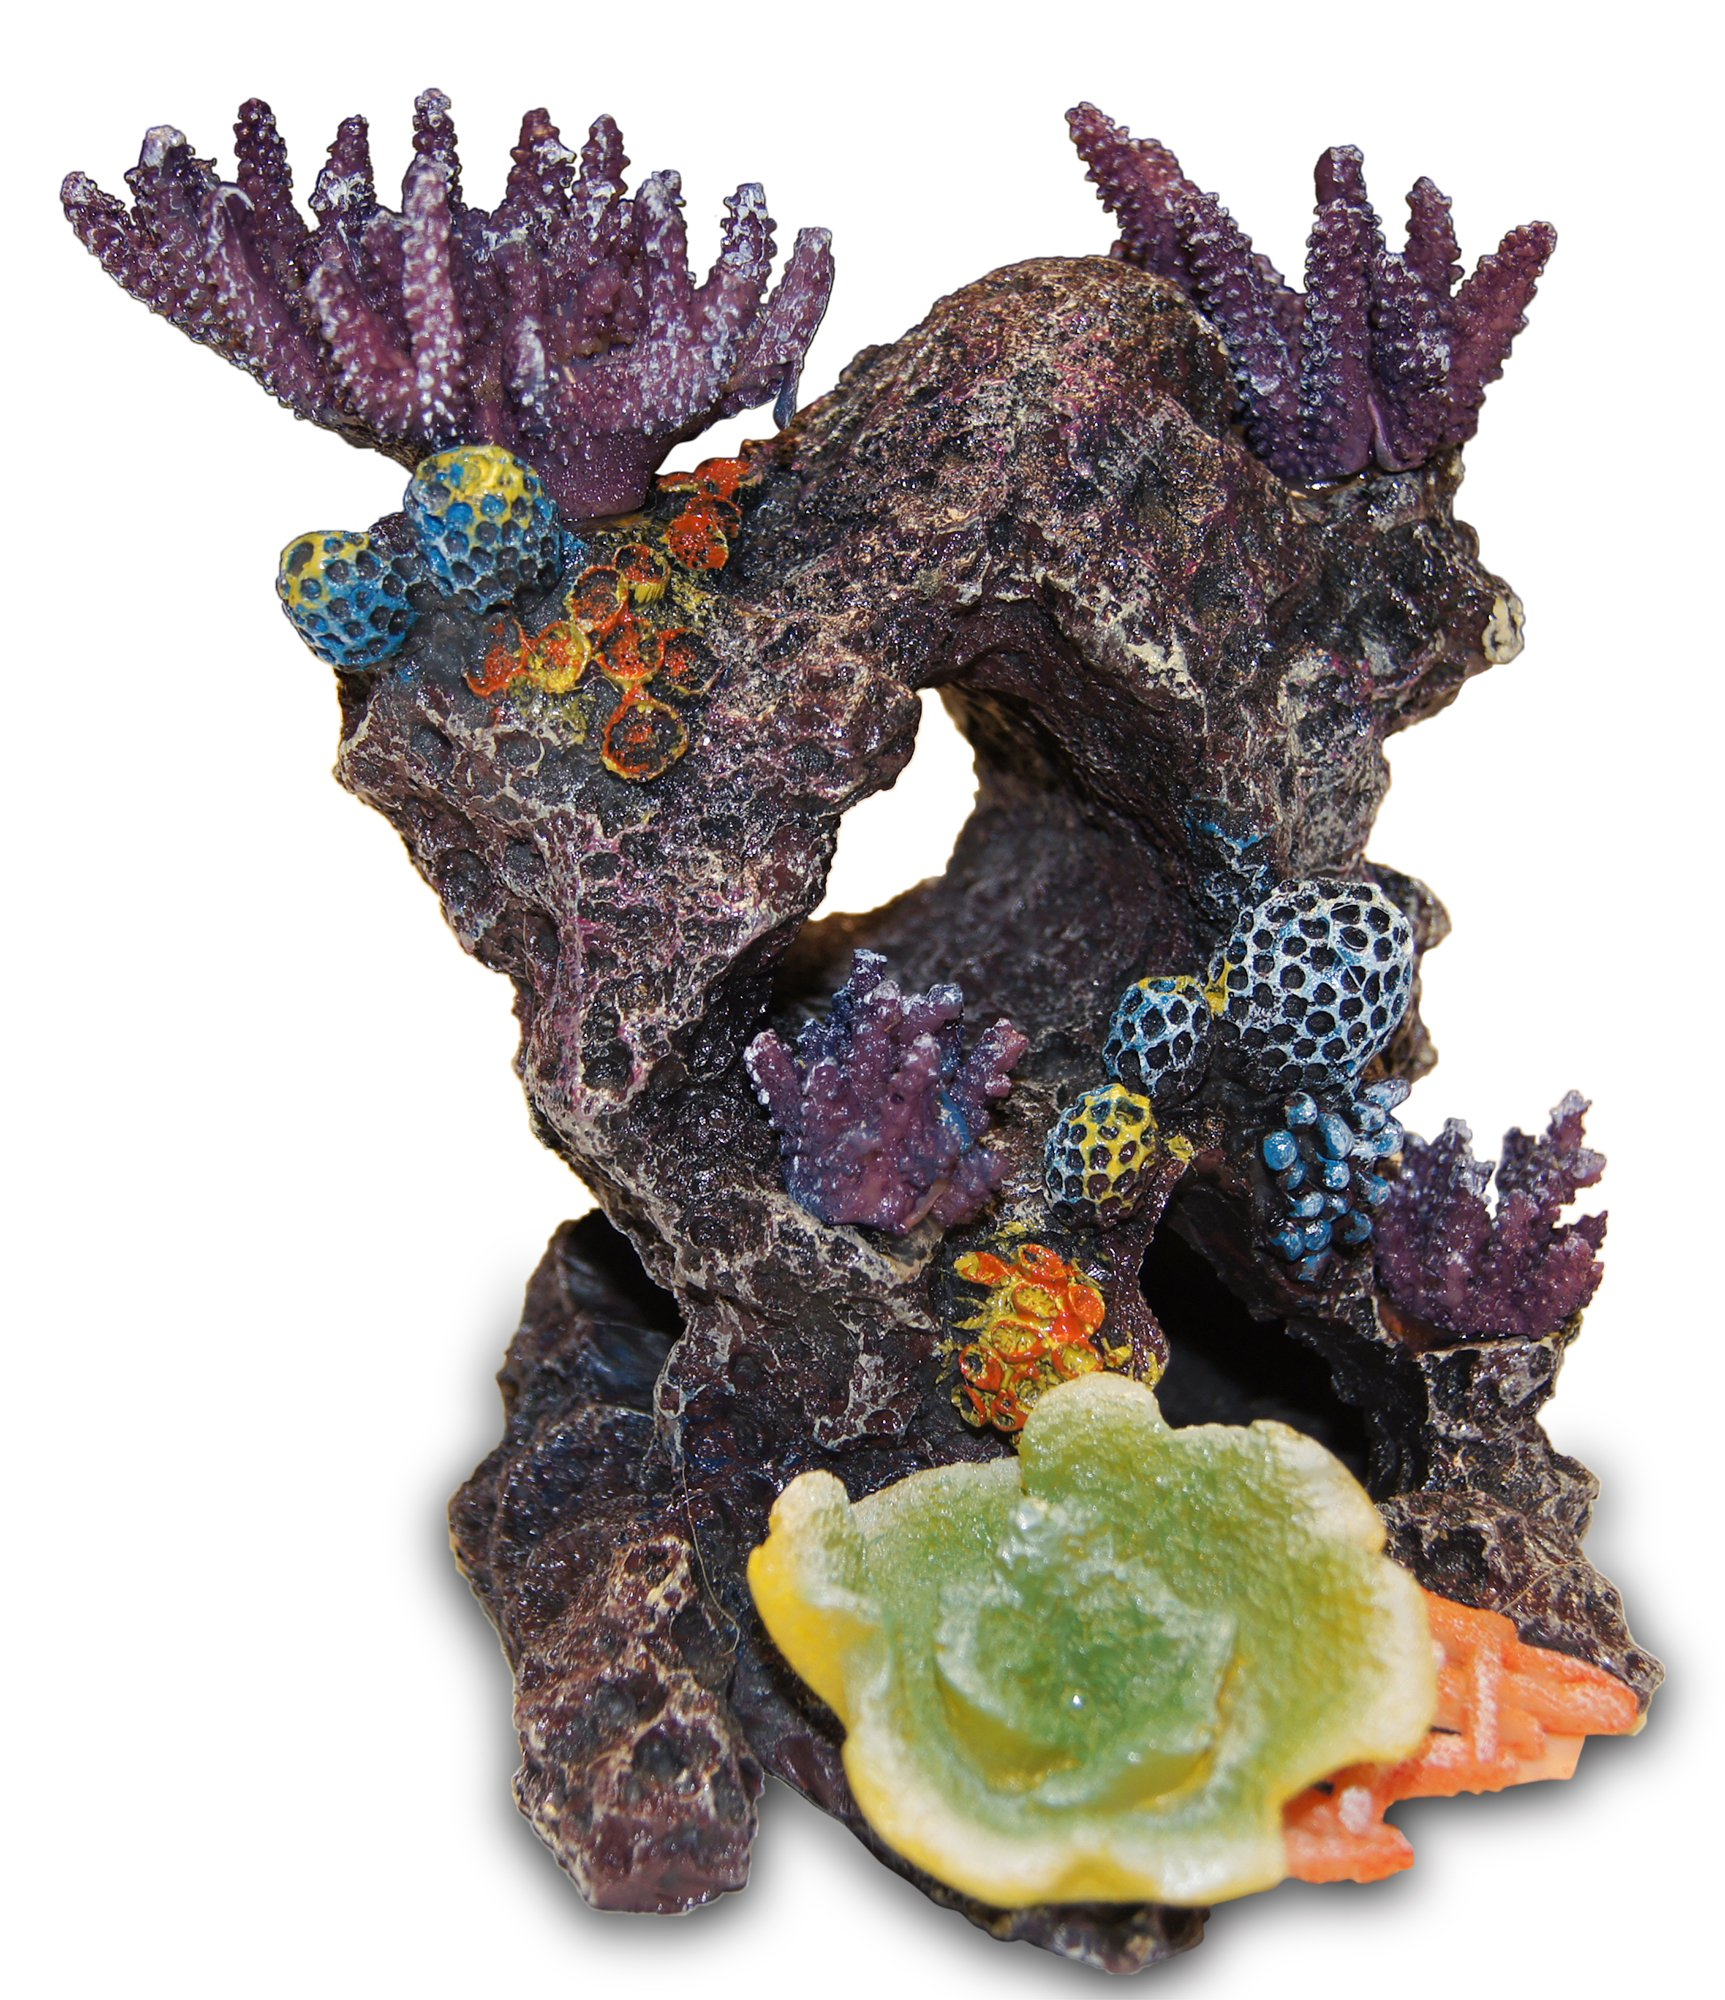 Medium Coral Aquarium Ornament Coral 1 by Top Fin